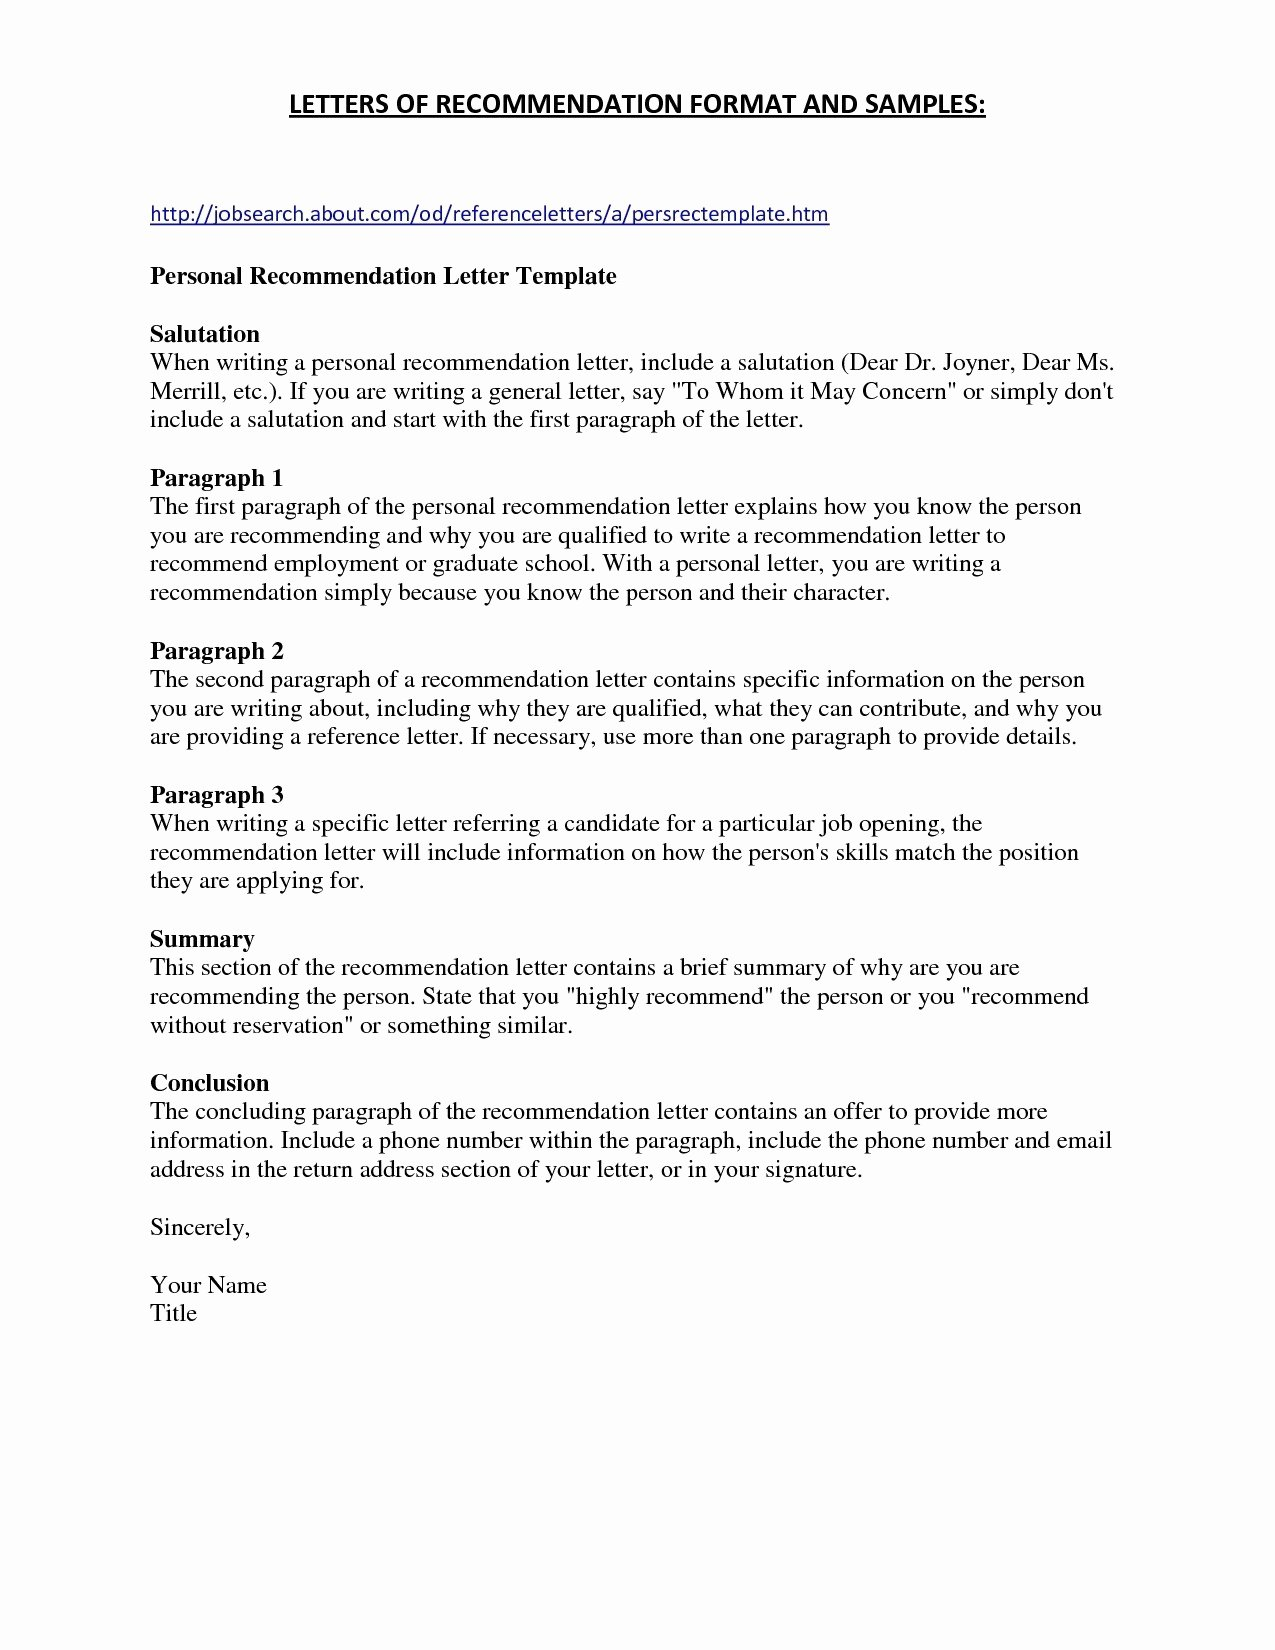 Refinance Letter Template Elegant Cash Out Refinance Letter Template Collection